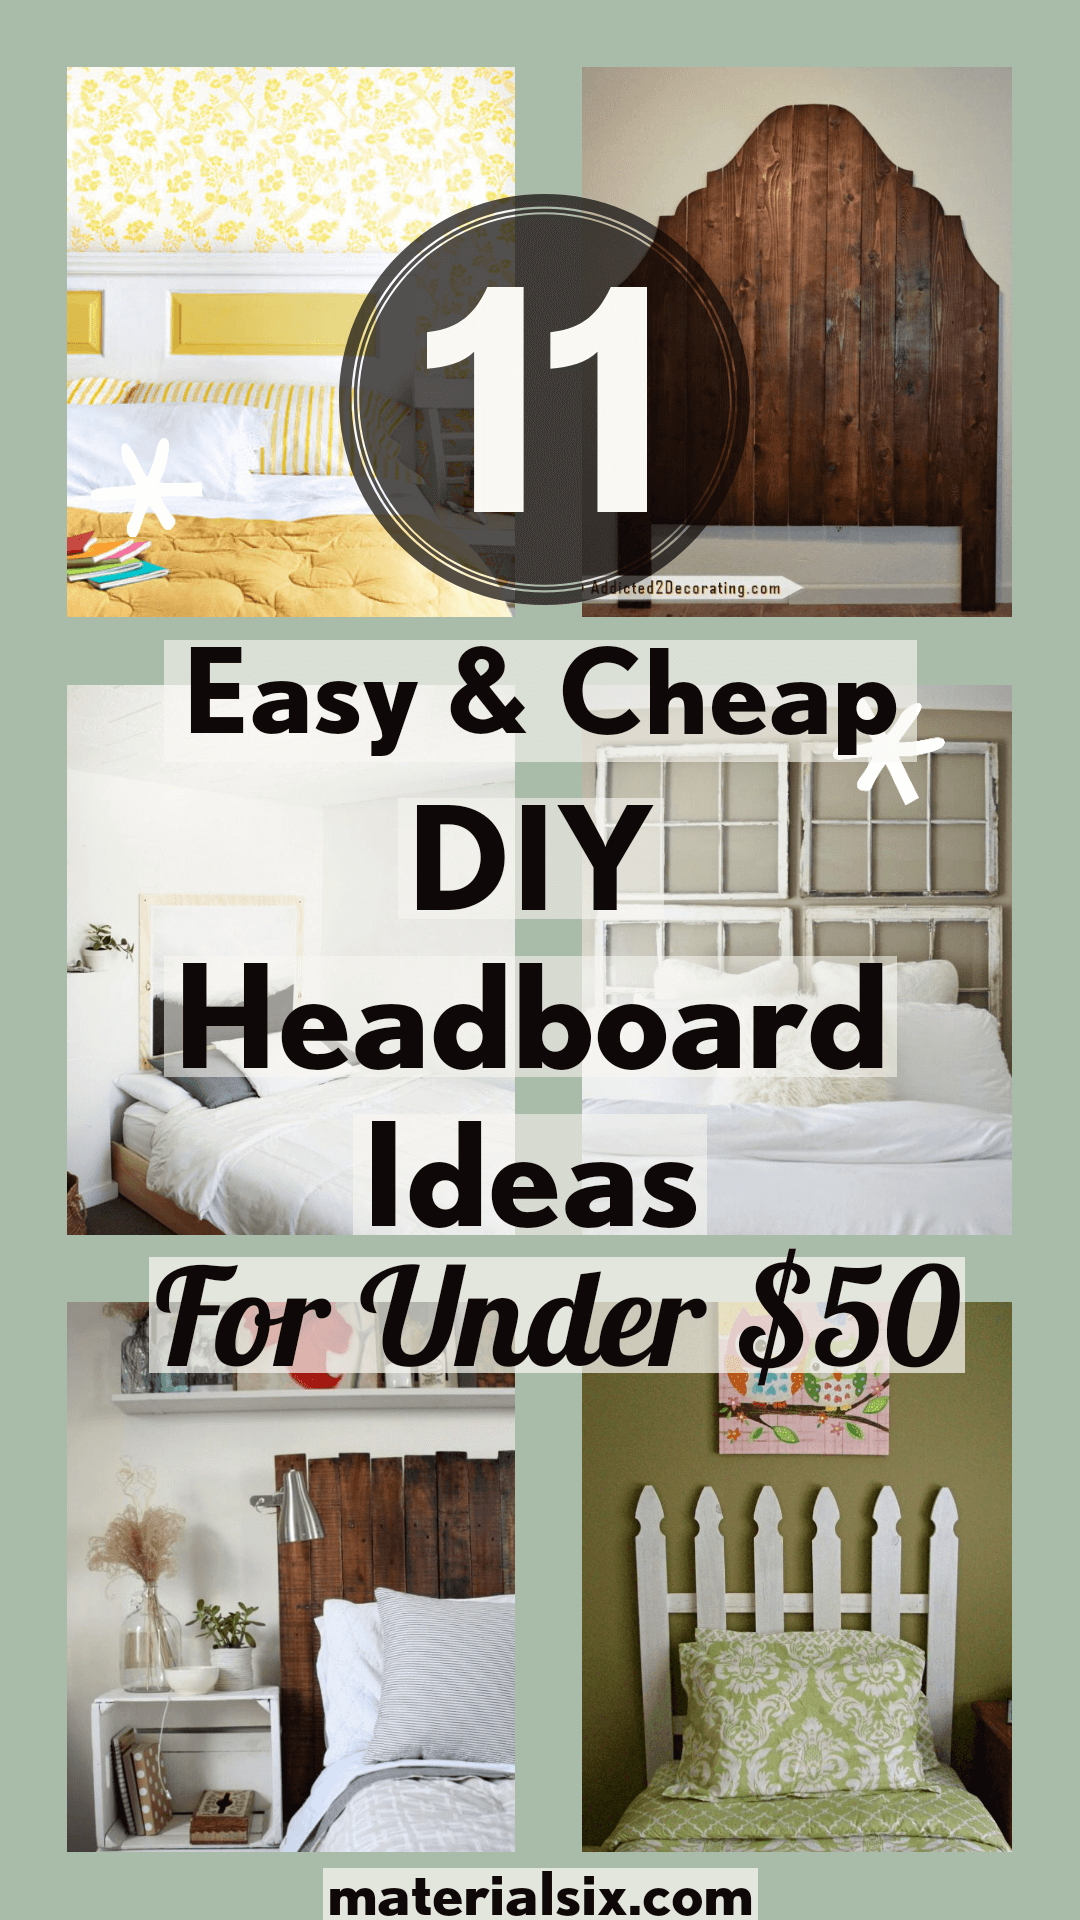 11 Easy & Cheap DIY headboard Ideas for Under $50